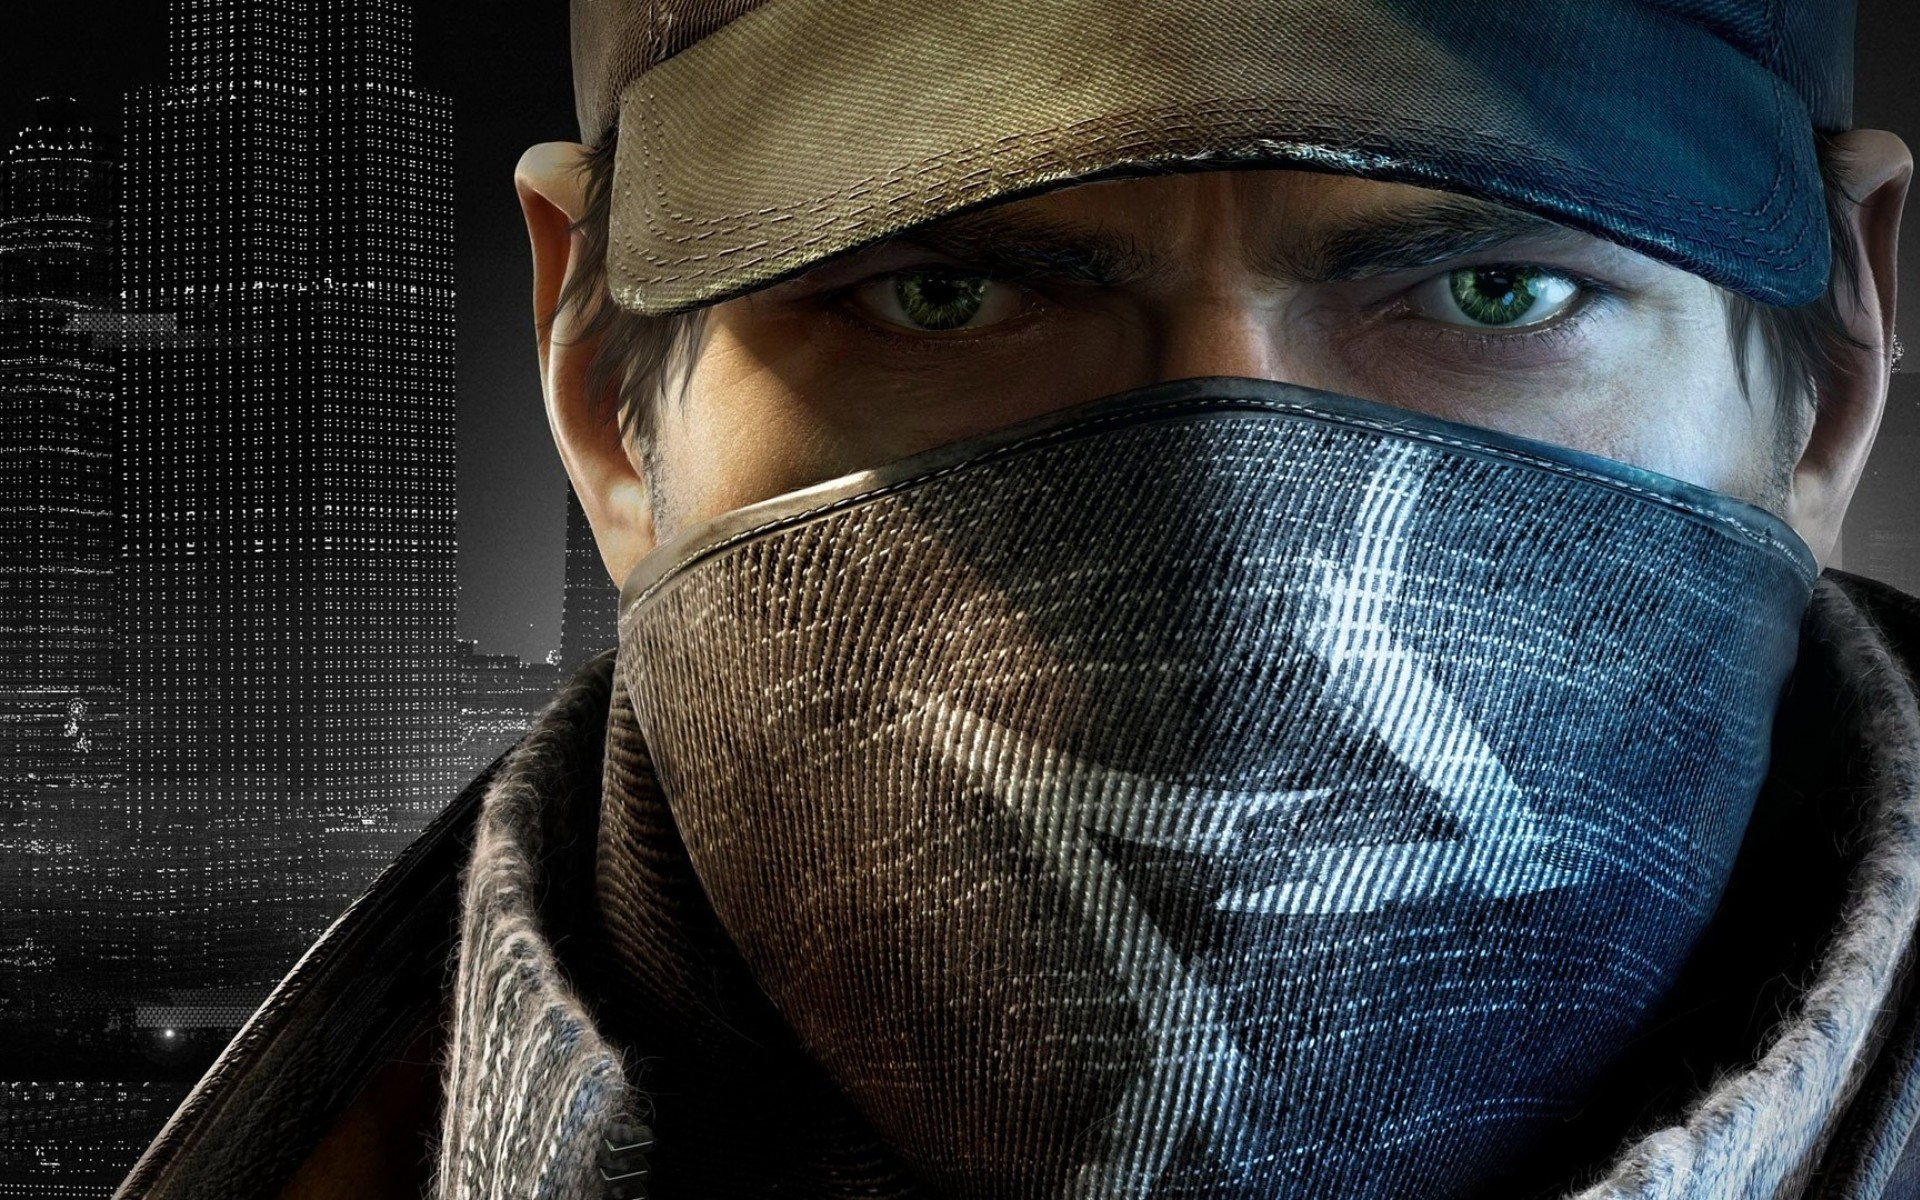 watch_dogs_aiden_pearce_1920x1200_83844